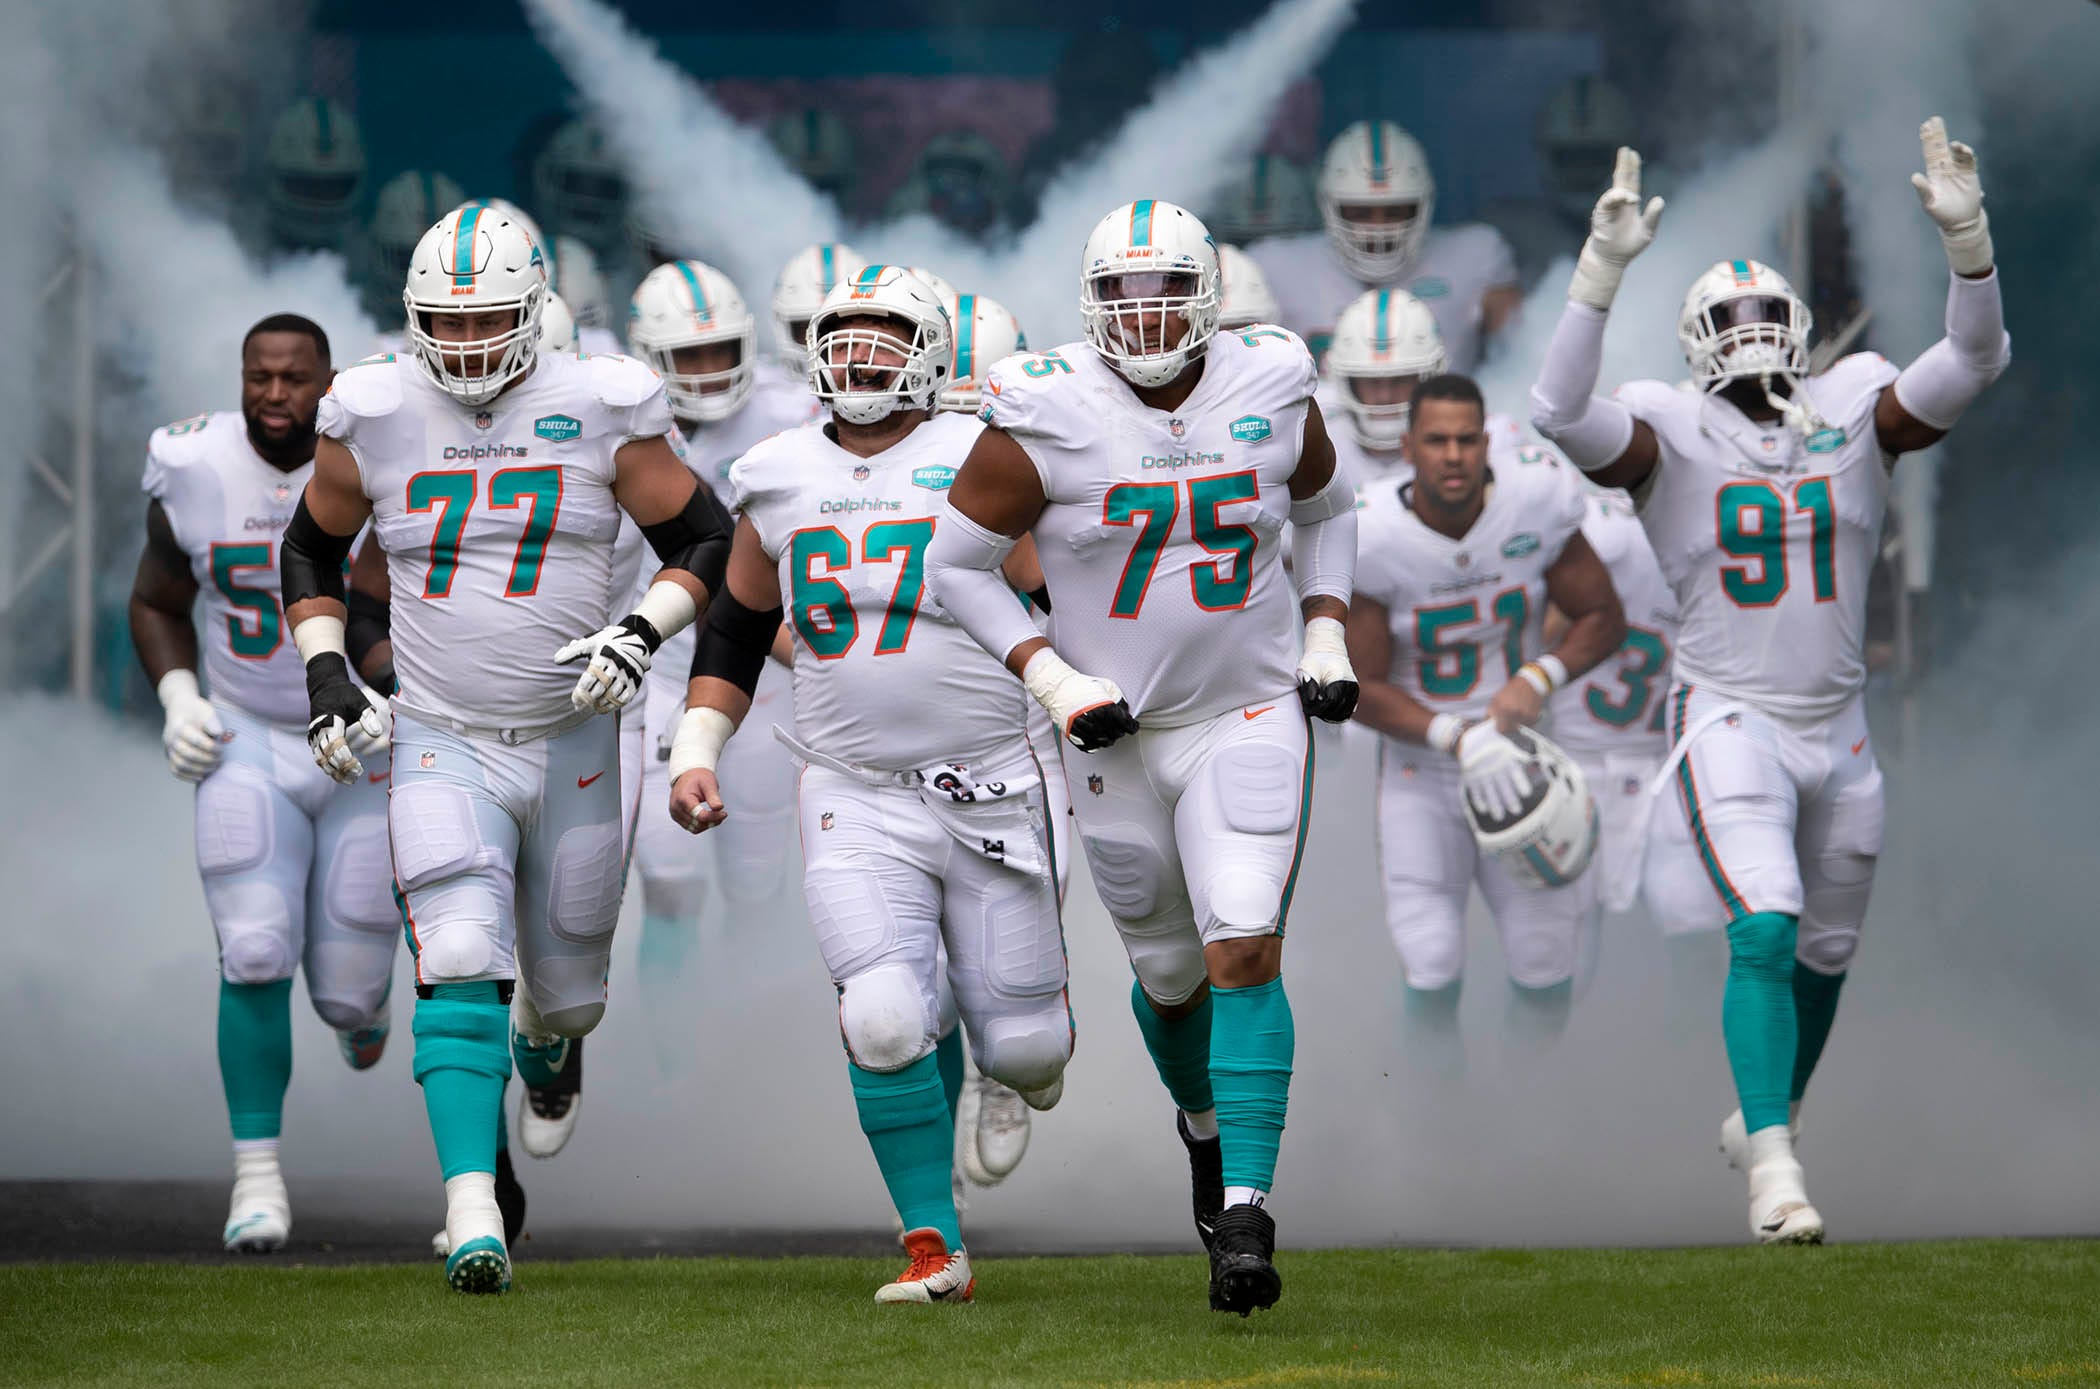 Free agency 2021: Will Dolphins retain Karras or shop for new center?